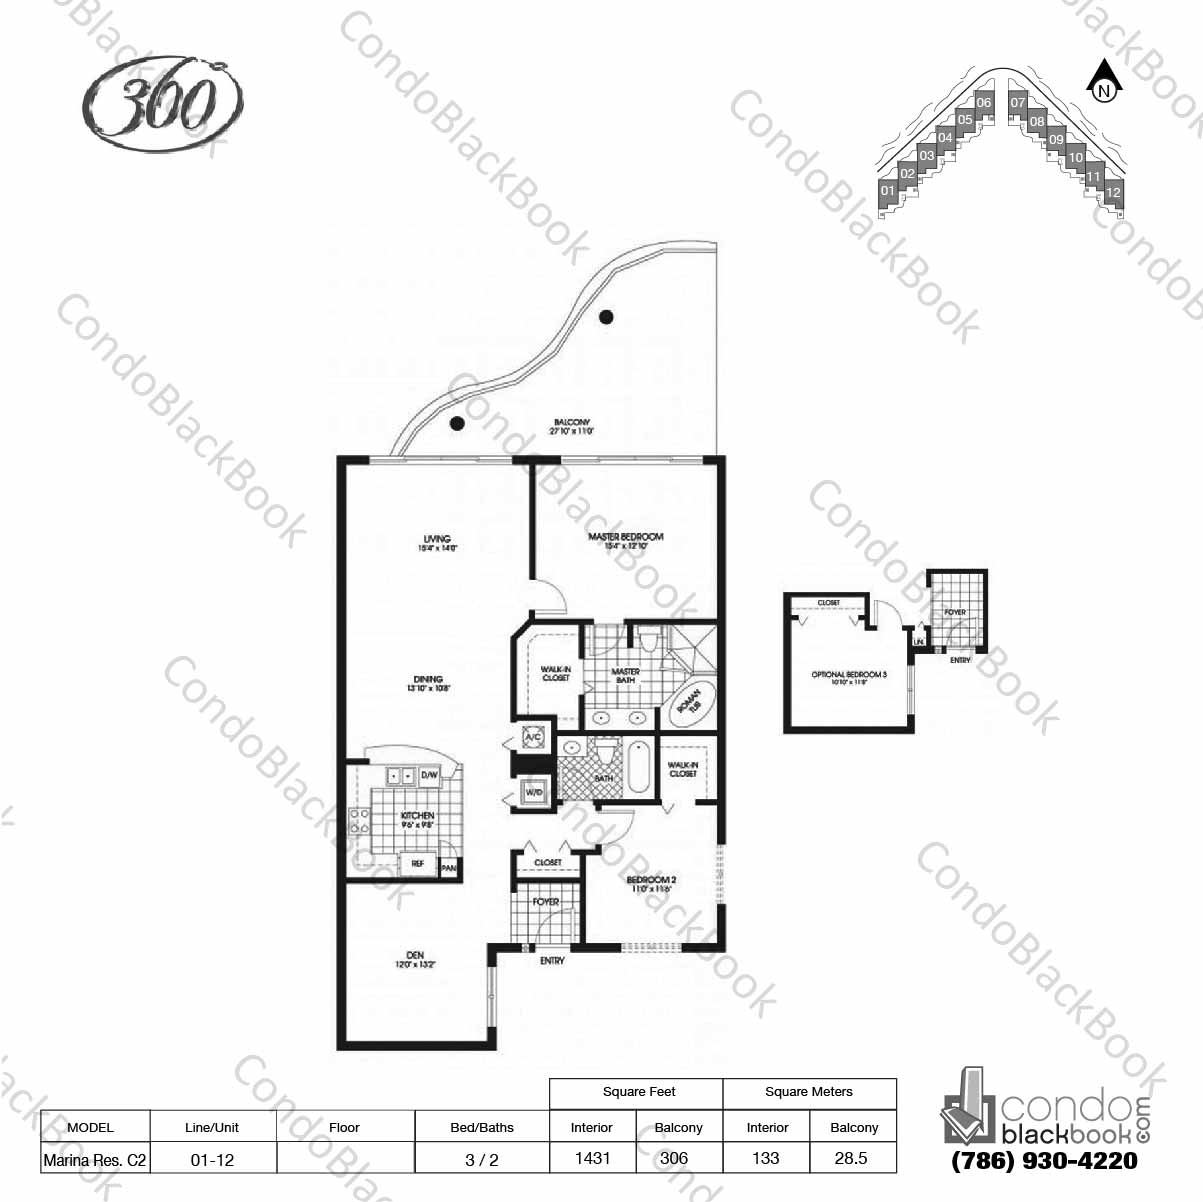 Floor plan for 360 Condo North Bay Village, model Marina Res. C2, line 01 - 12,  3 / 2 bedrooms, 1431 sq ft